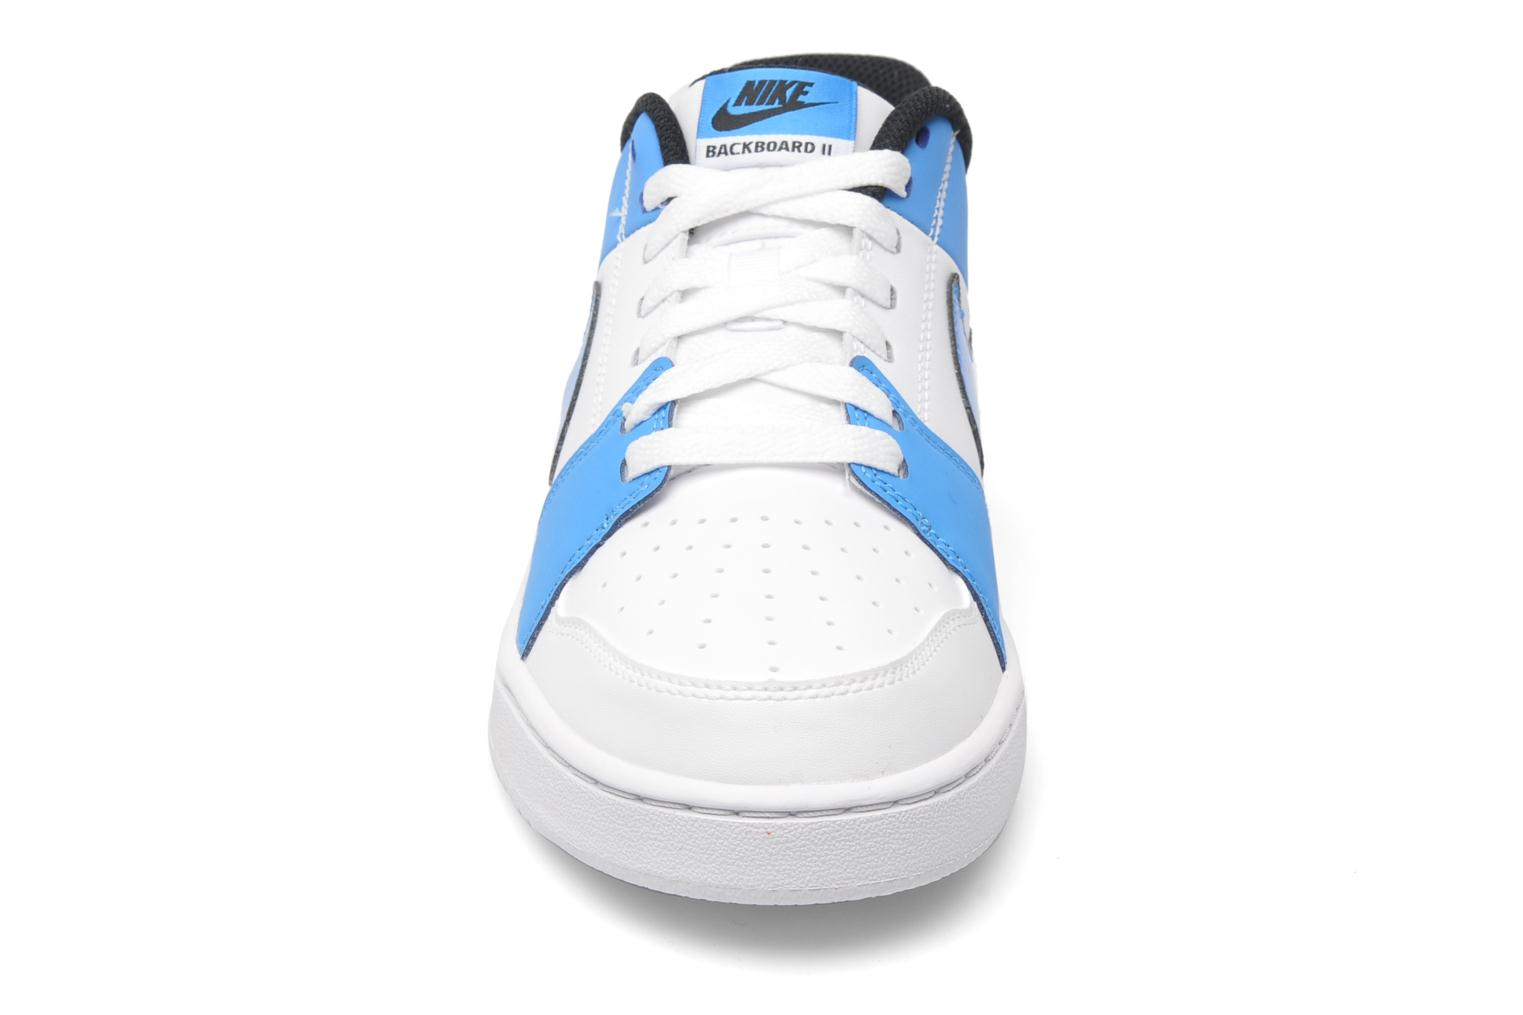 Nike backboard ii White/Blue Hero-Black-White